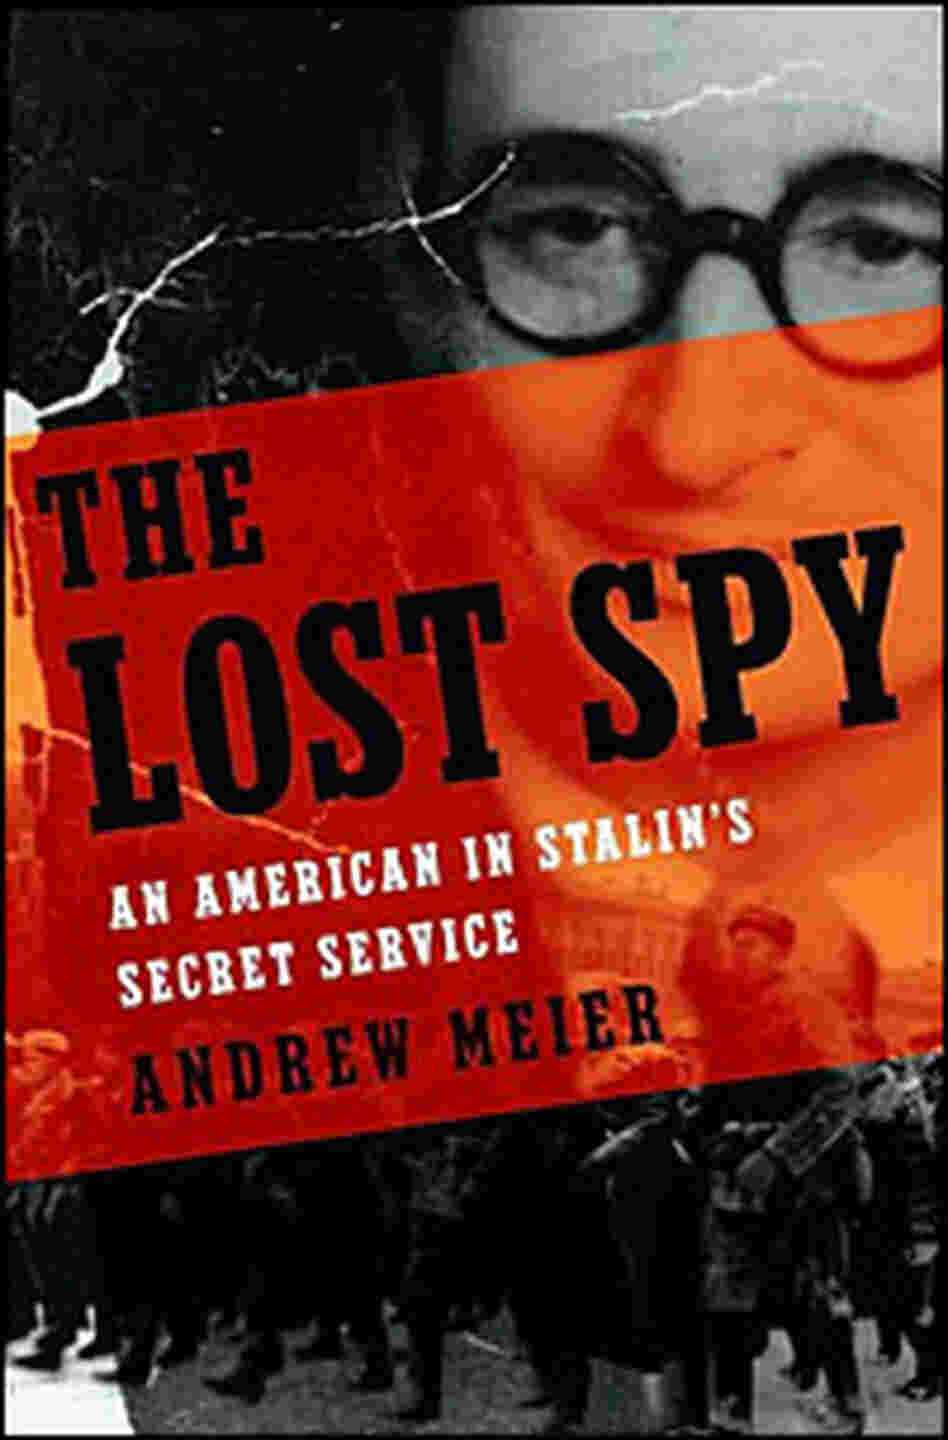 Andrew Meier's 'The Lost Spy'